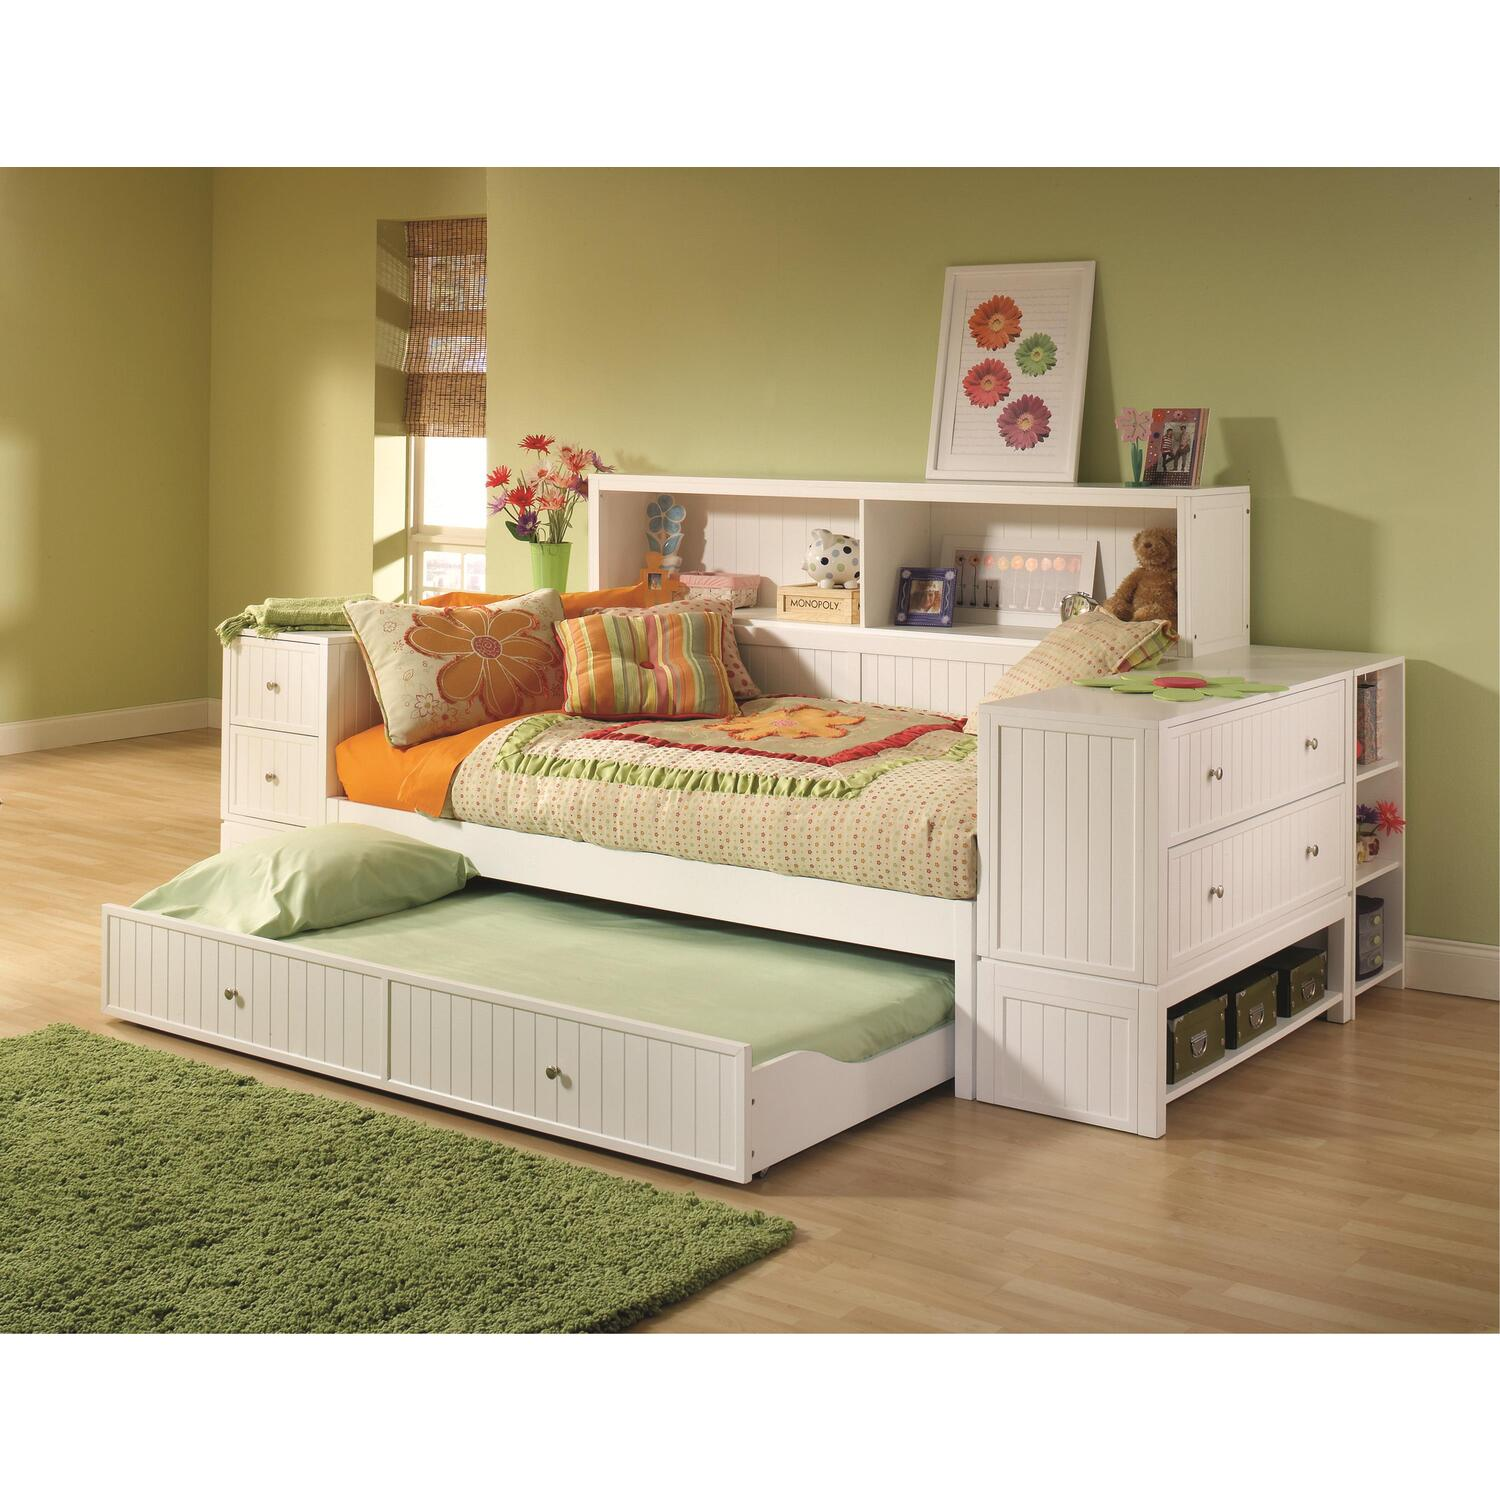 Hillsdale Furniture Cody Youth Bedroom - Bookcase Daybed ...